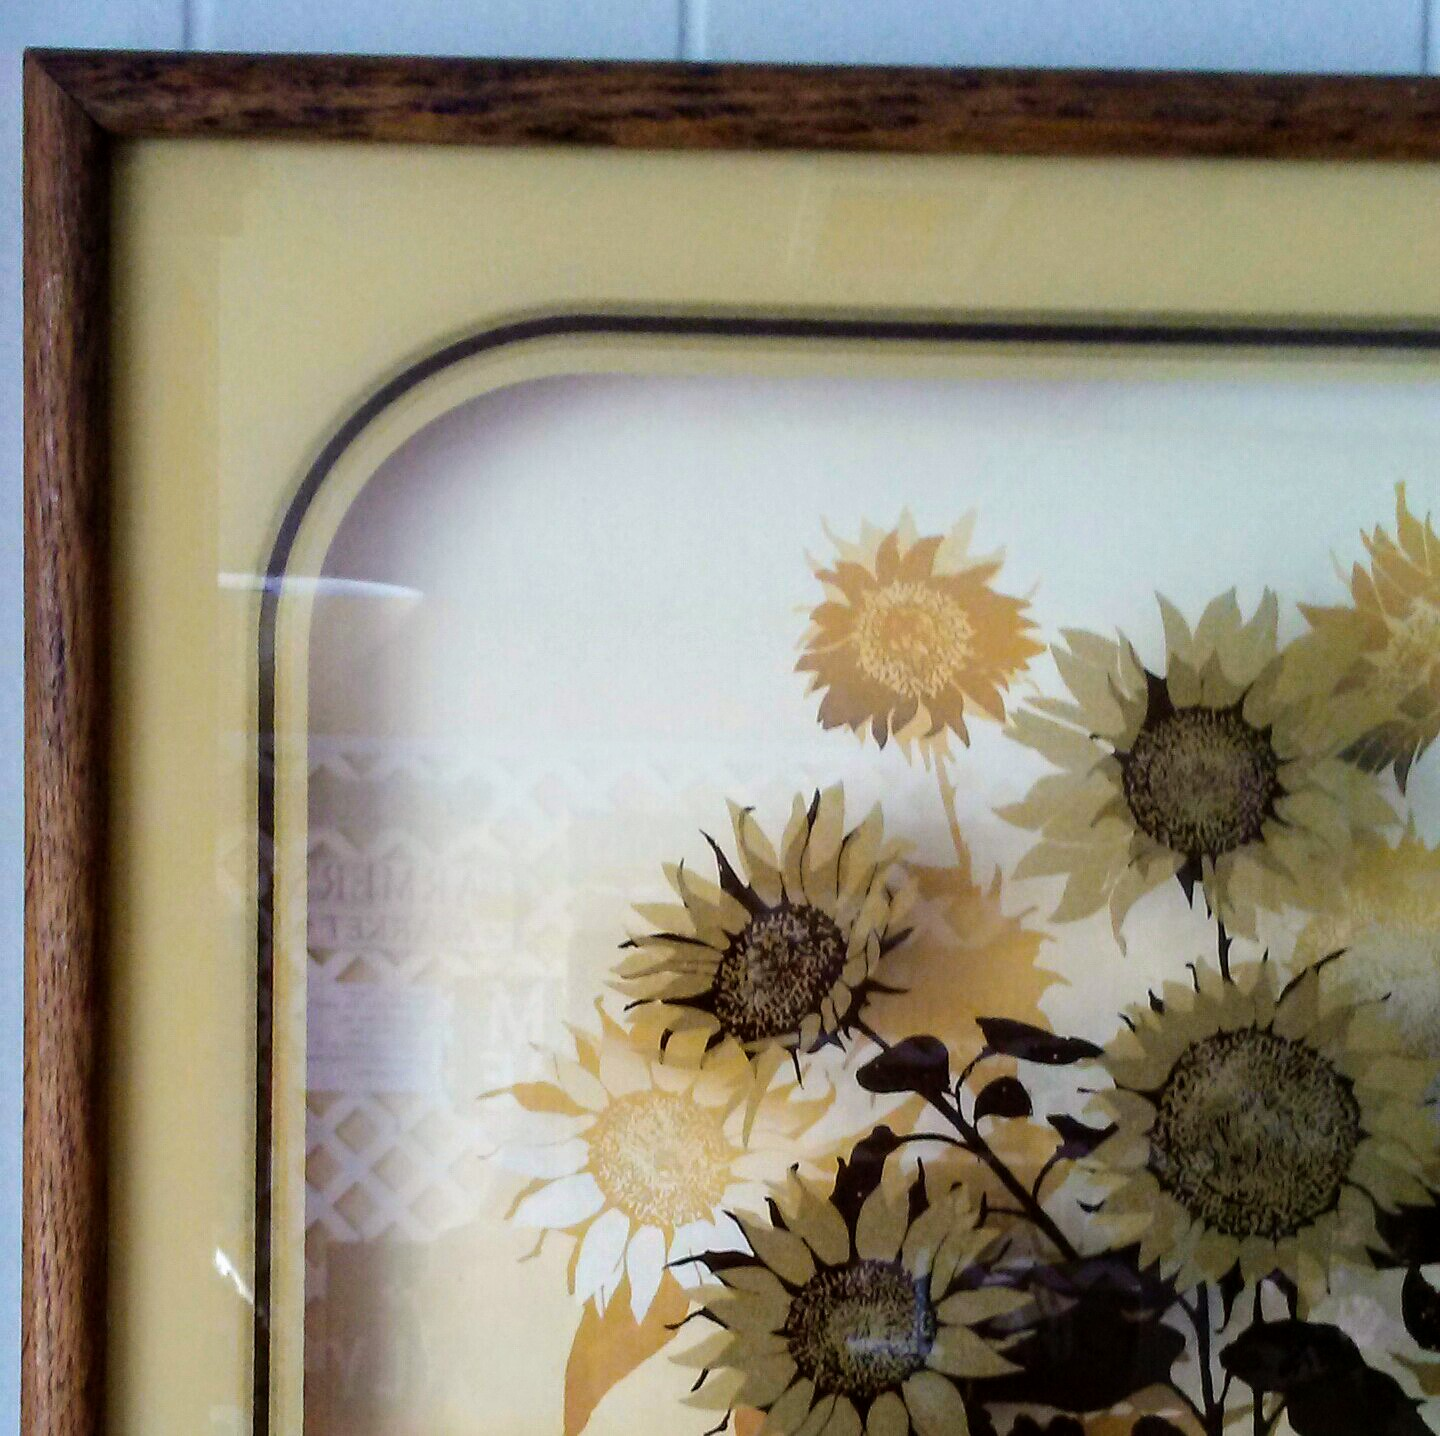 Reverse Painted Sunflower Art On Glass With A Scenic Background By Virgil Thrasher This 1970s Vintage Print Is Beauty Gold And Brown